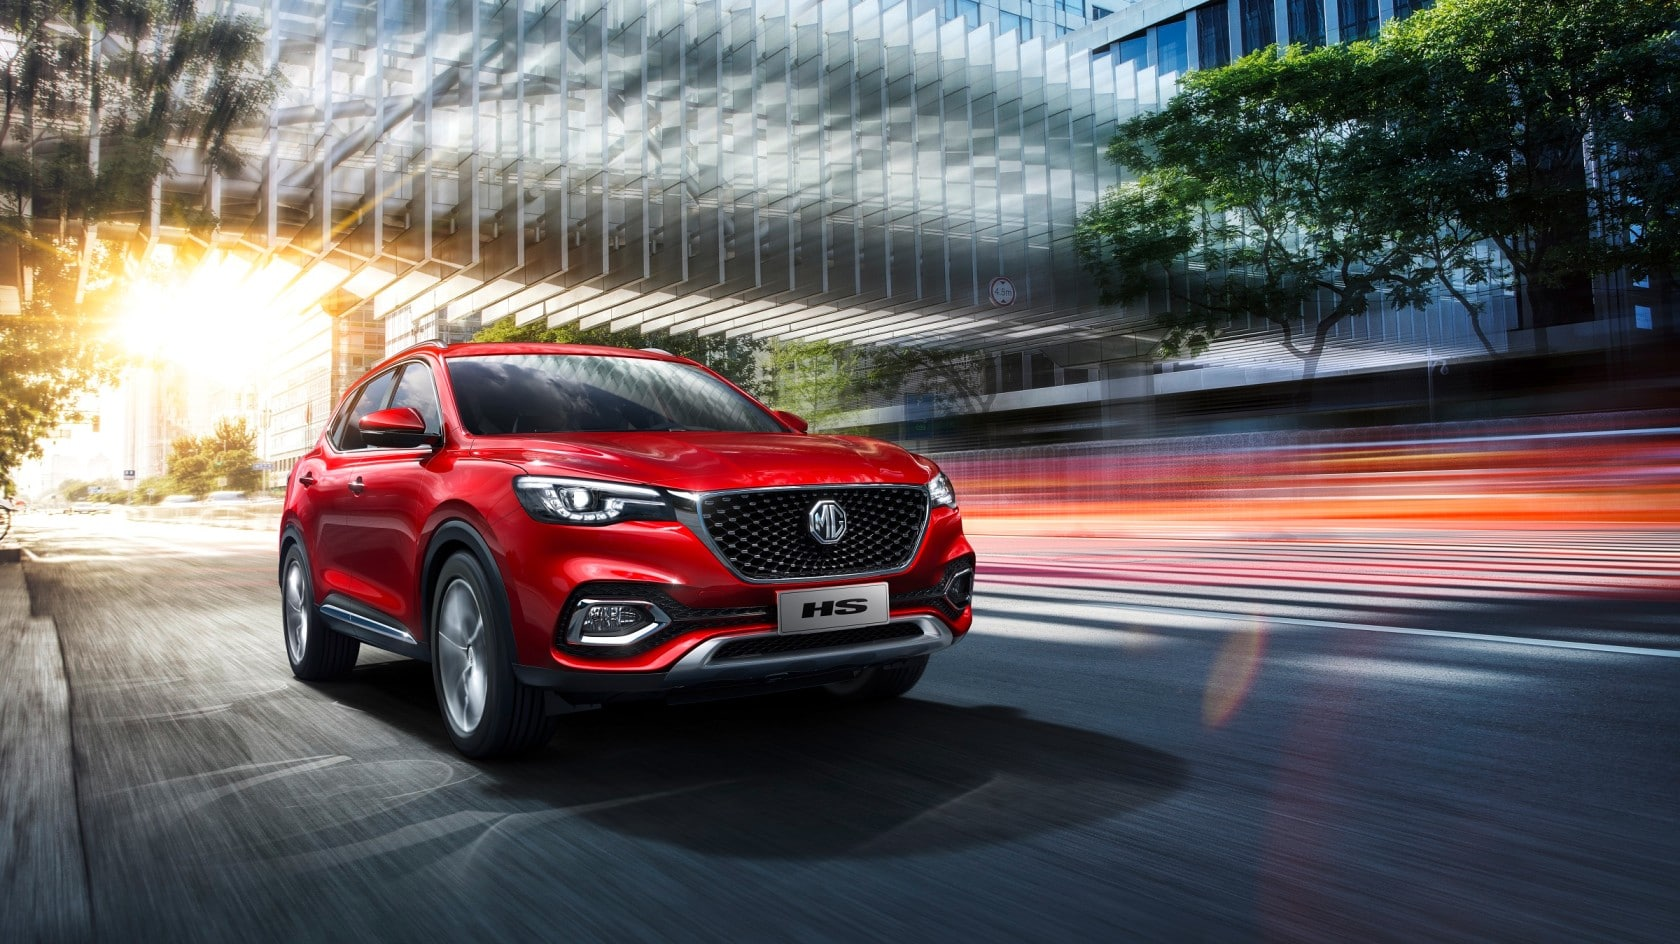 MG Motors to Launch an All-New E-Commerce Platform